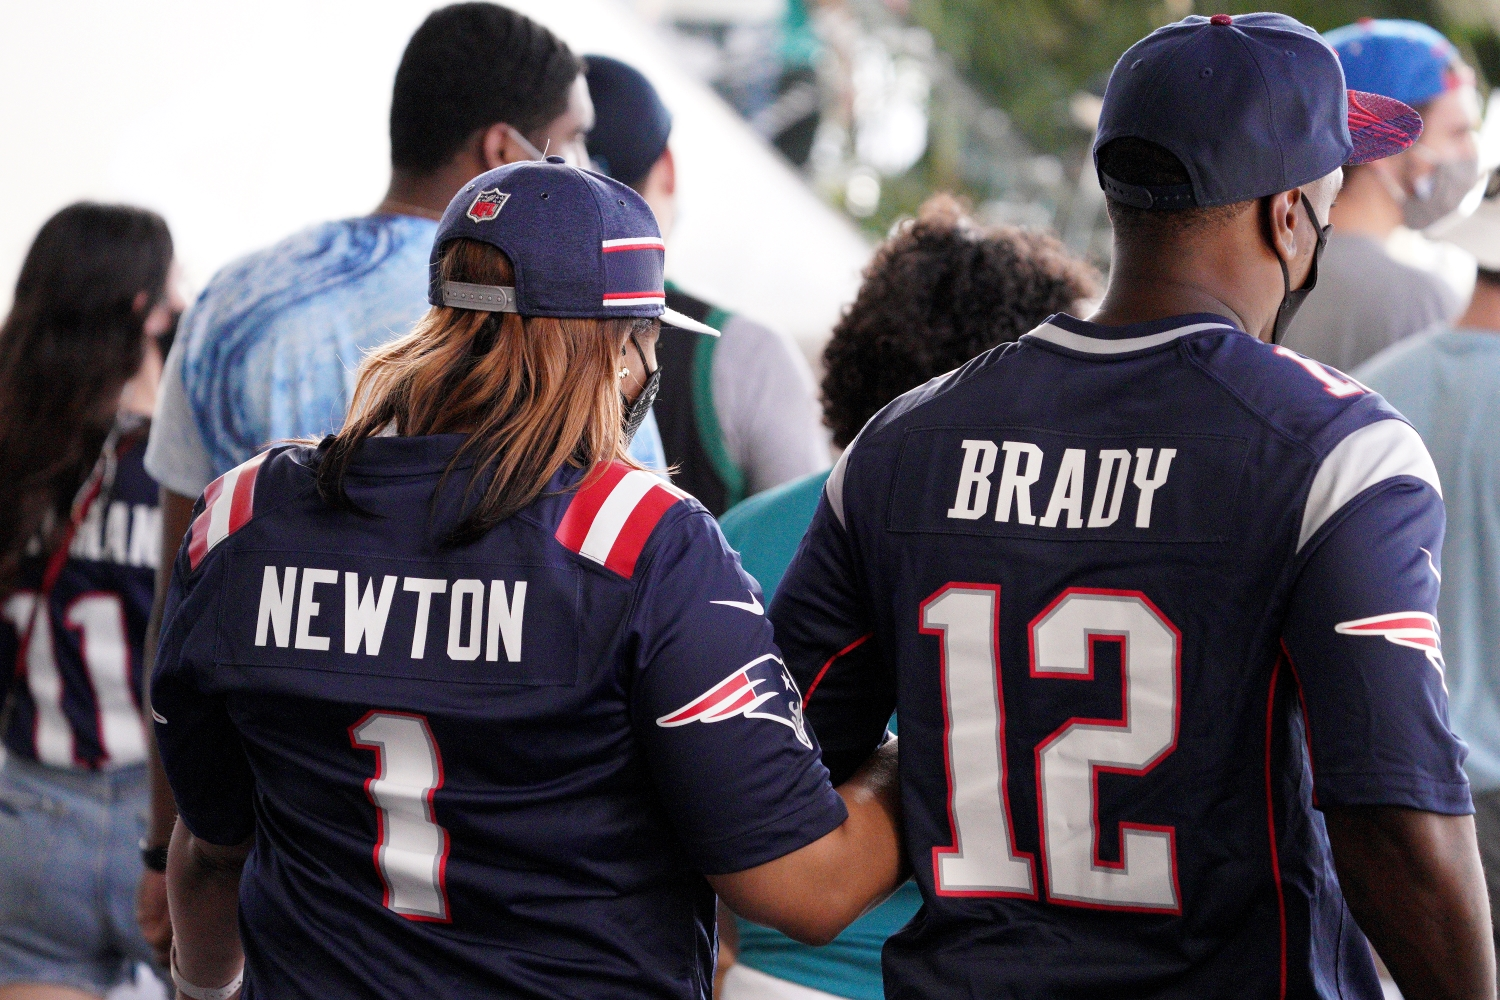 Patriots fans wearing Tom Brady and Cam Newton jerseys walk together during a game at Hard Rock Stadium.